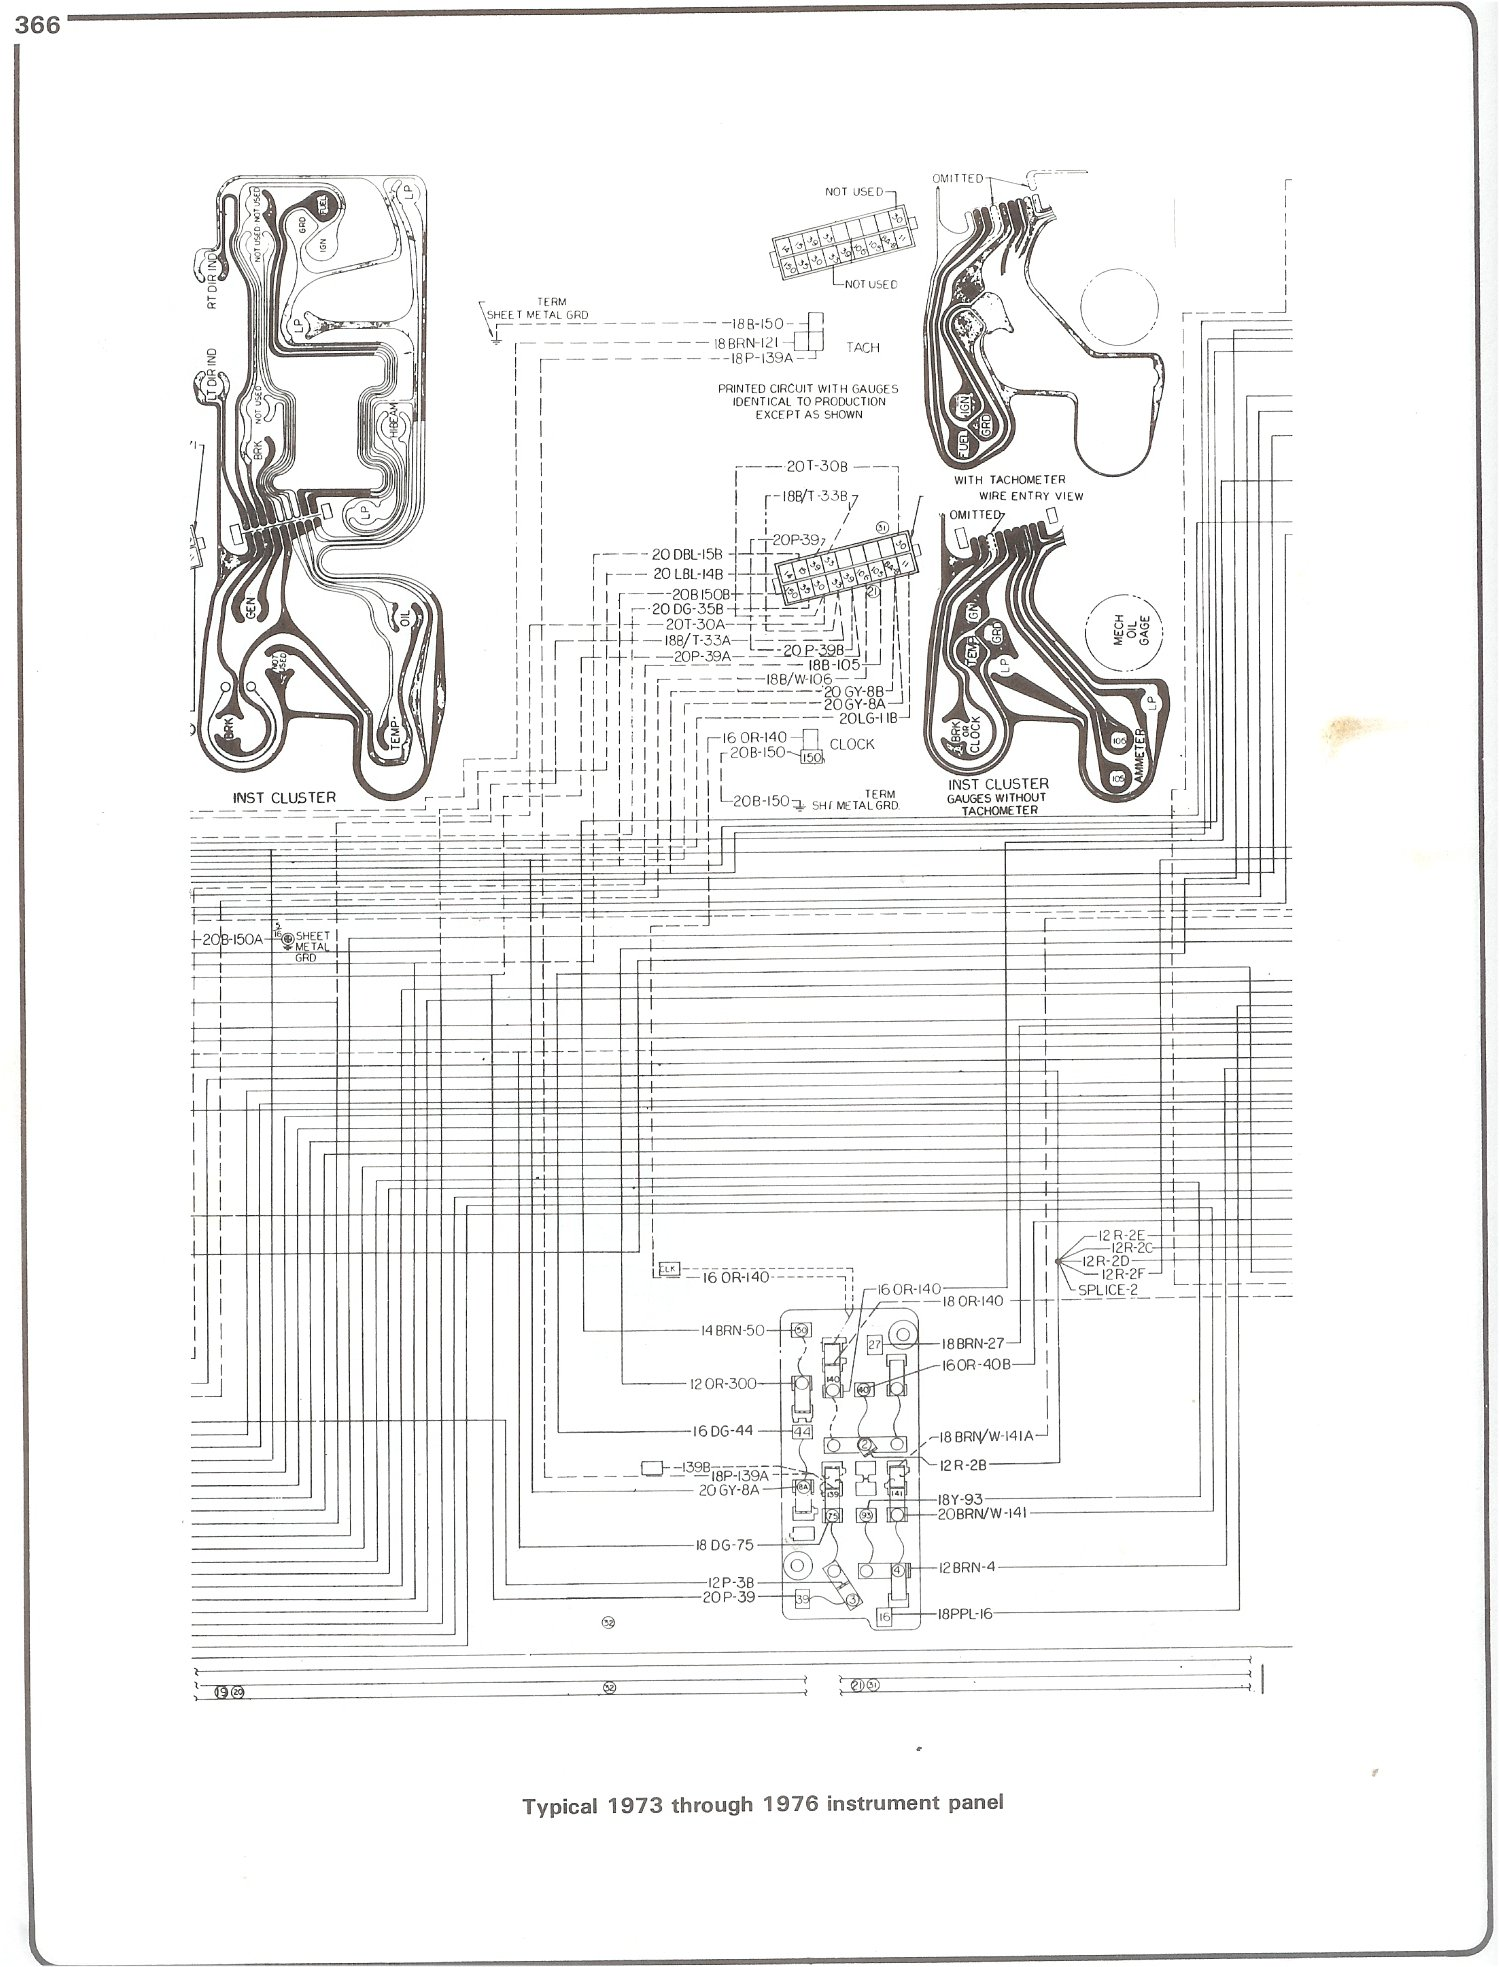 1975 Gmc Jimmy Wiring Diagram Will Be A Thing 1996 Diagrams Complete 73 87 1989 S15